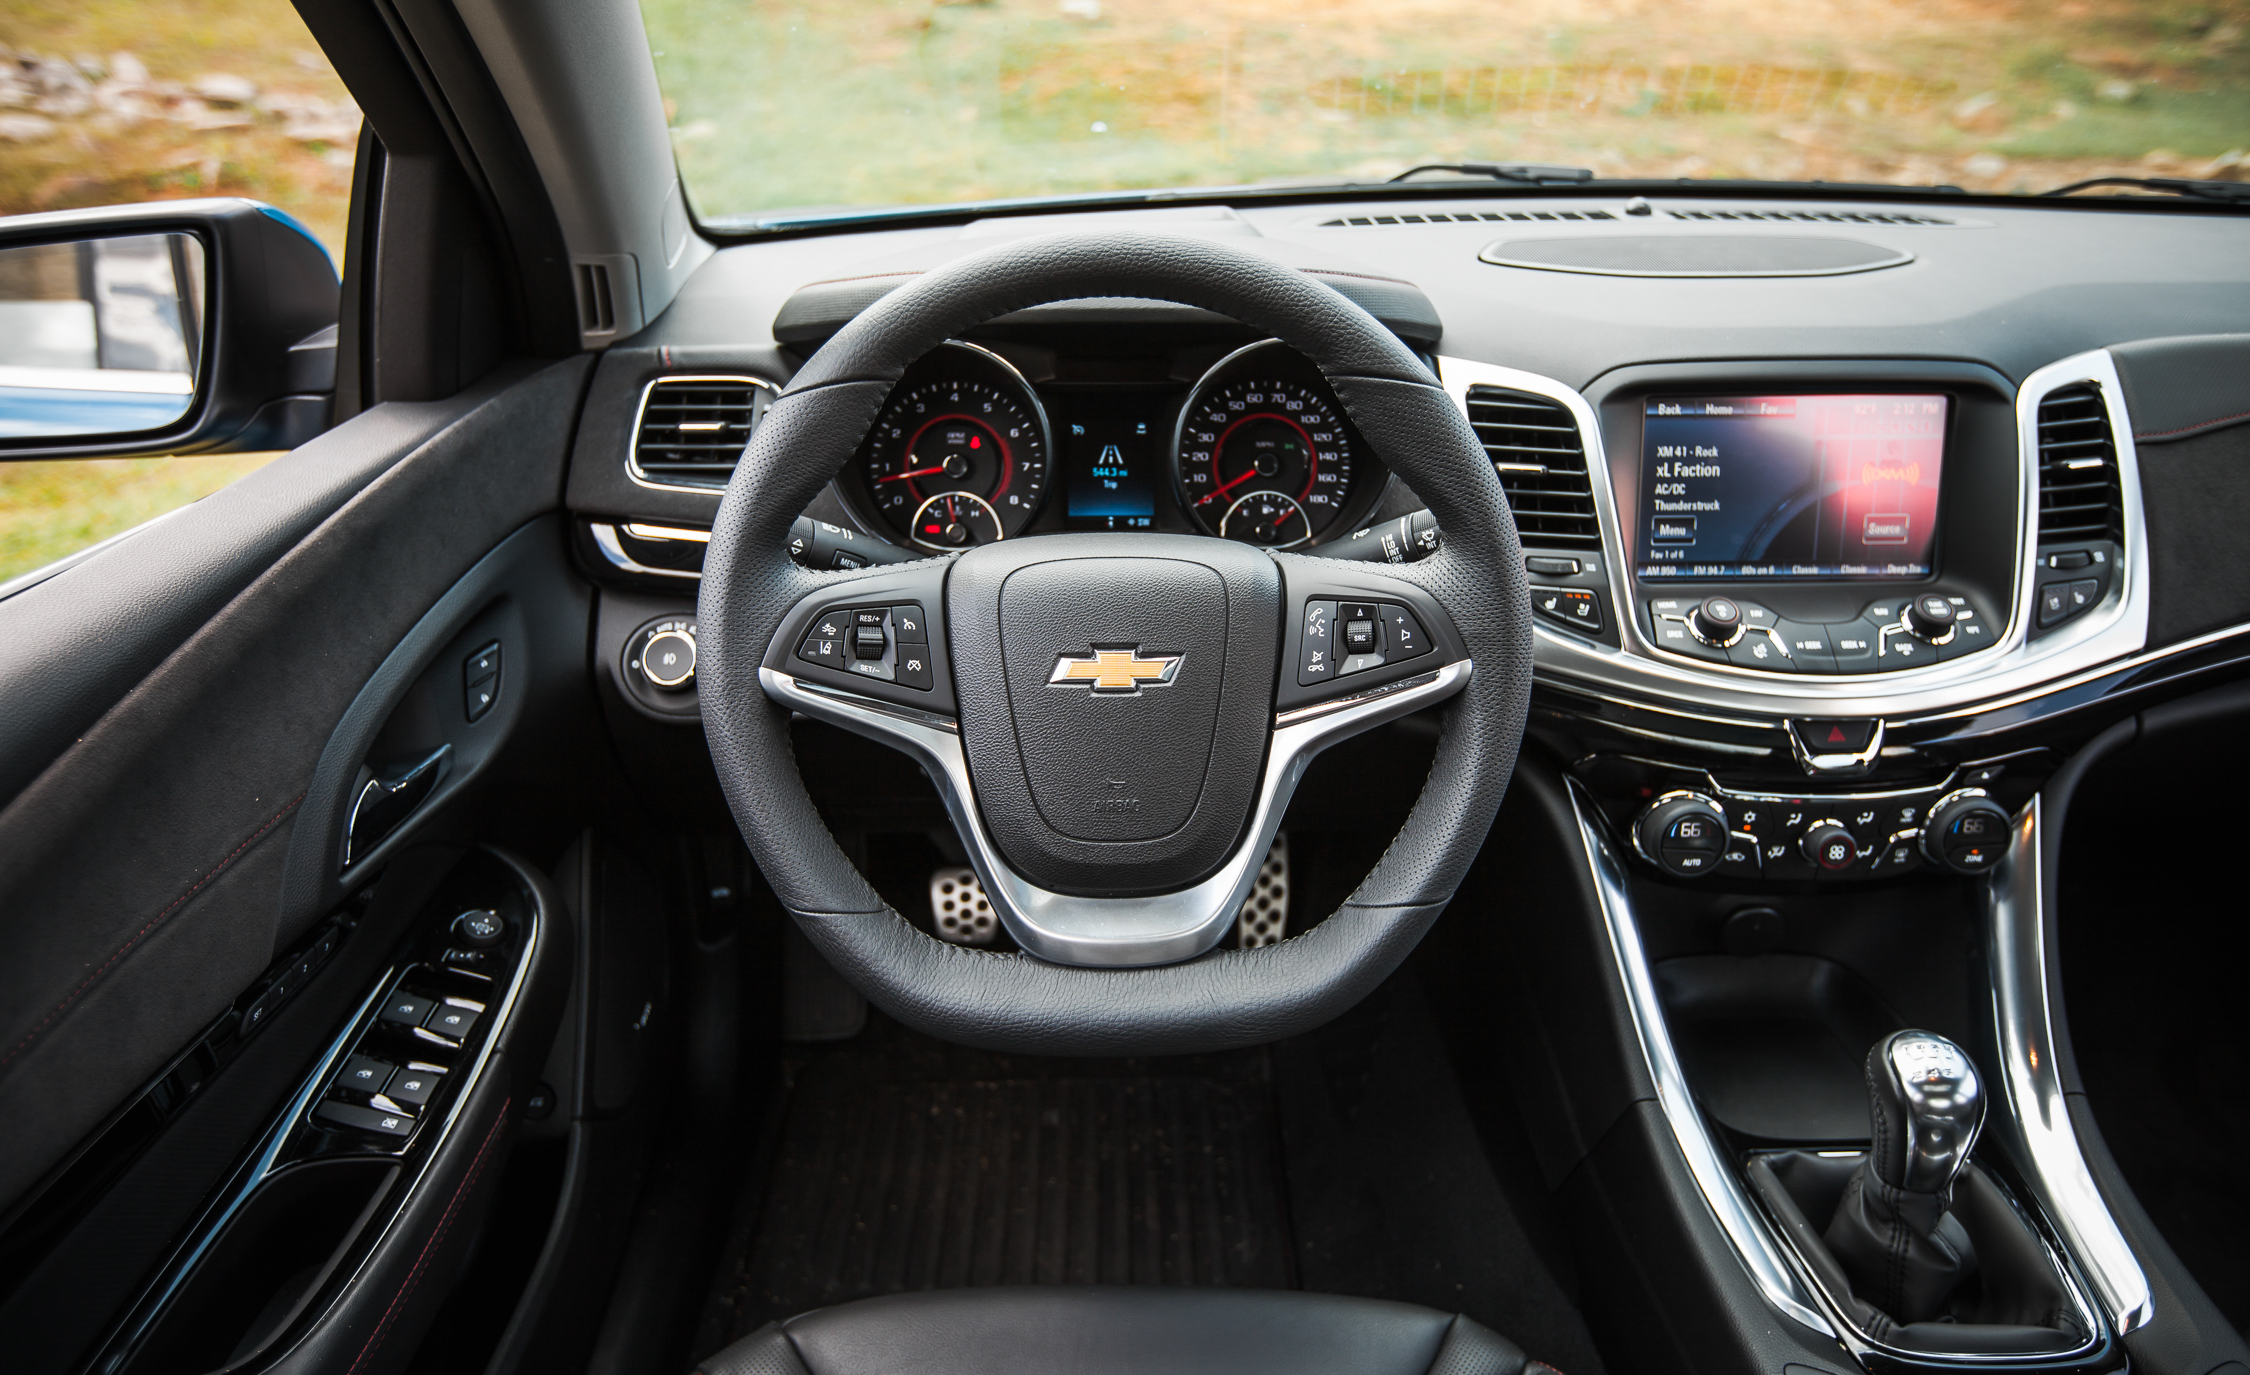 2015 Chevrolet SS Interior Cockpit